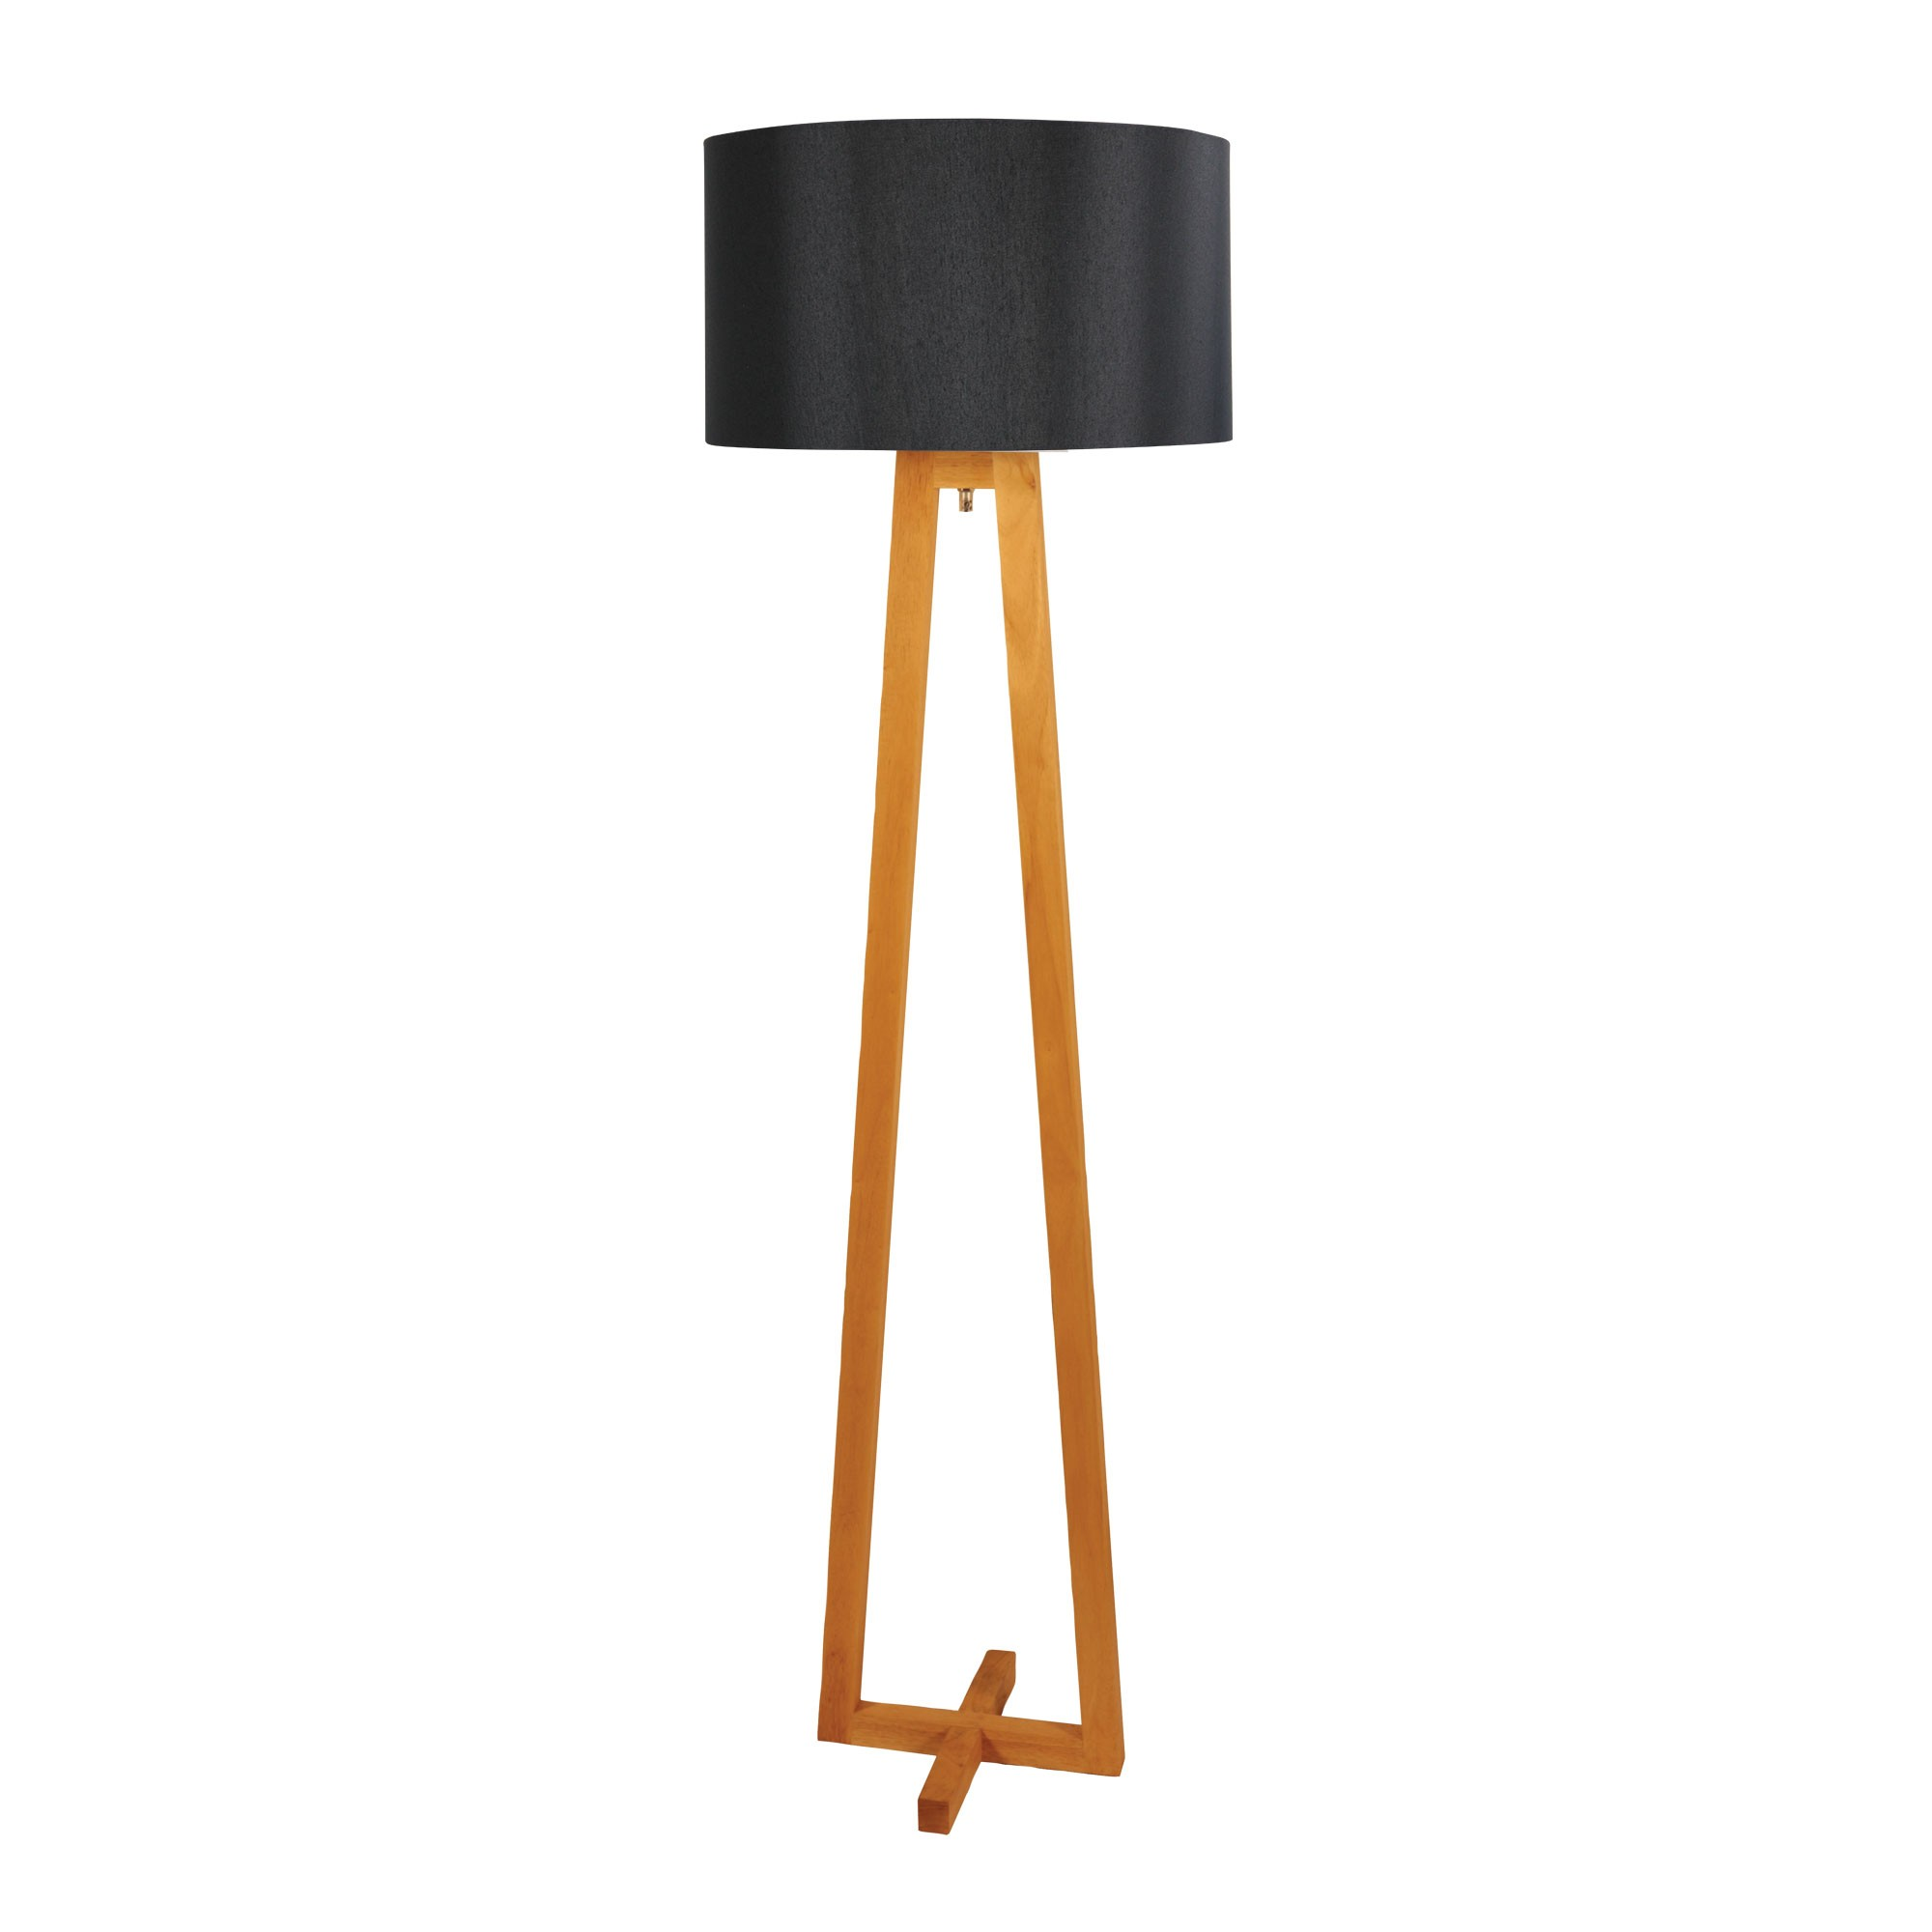 Edar Scandi Timber Base Floor Lamp, Black Shade